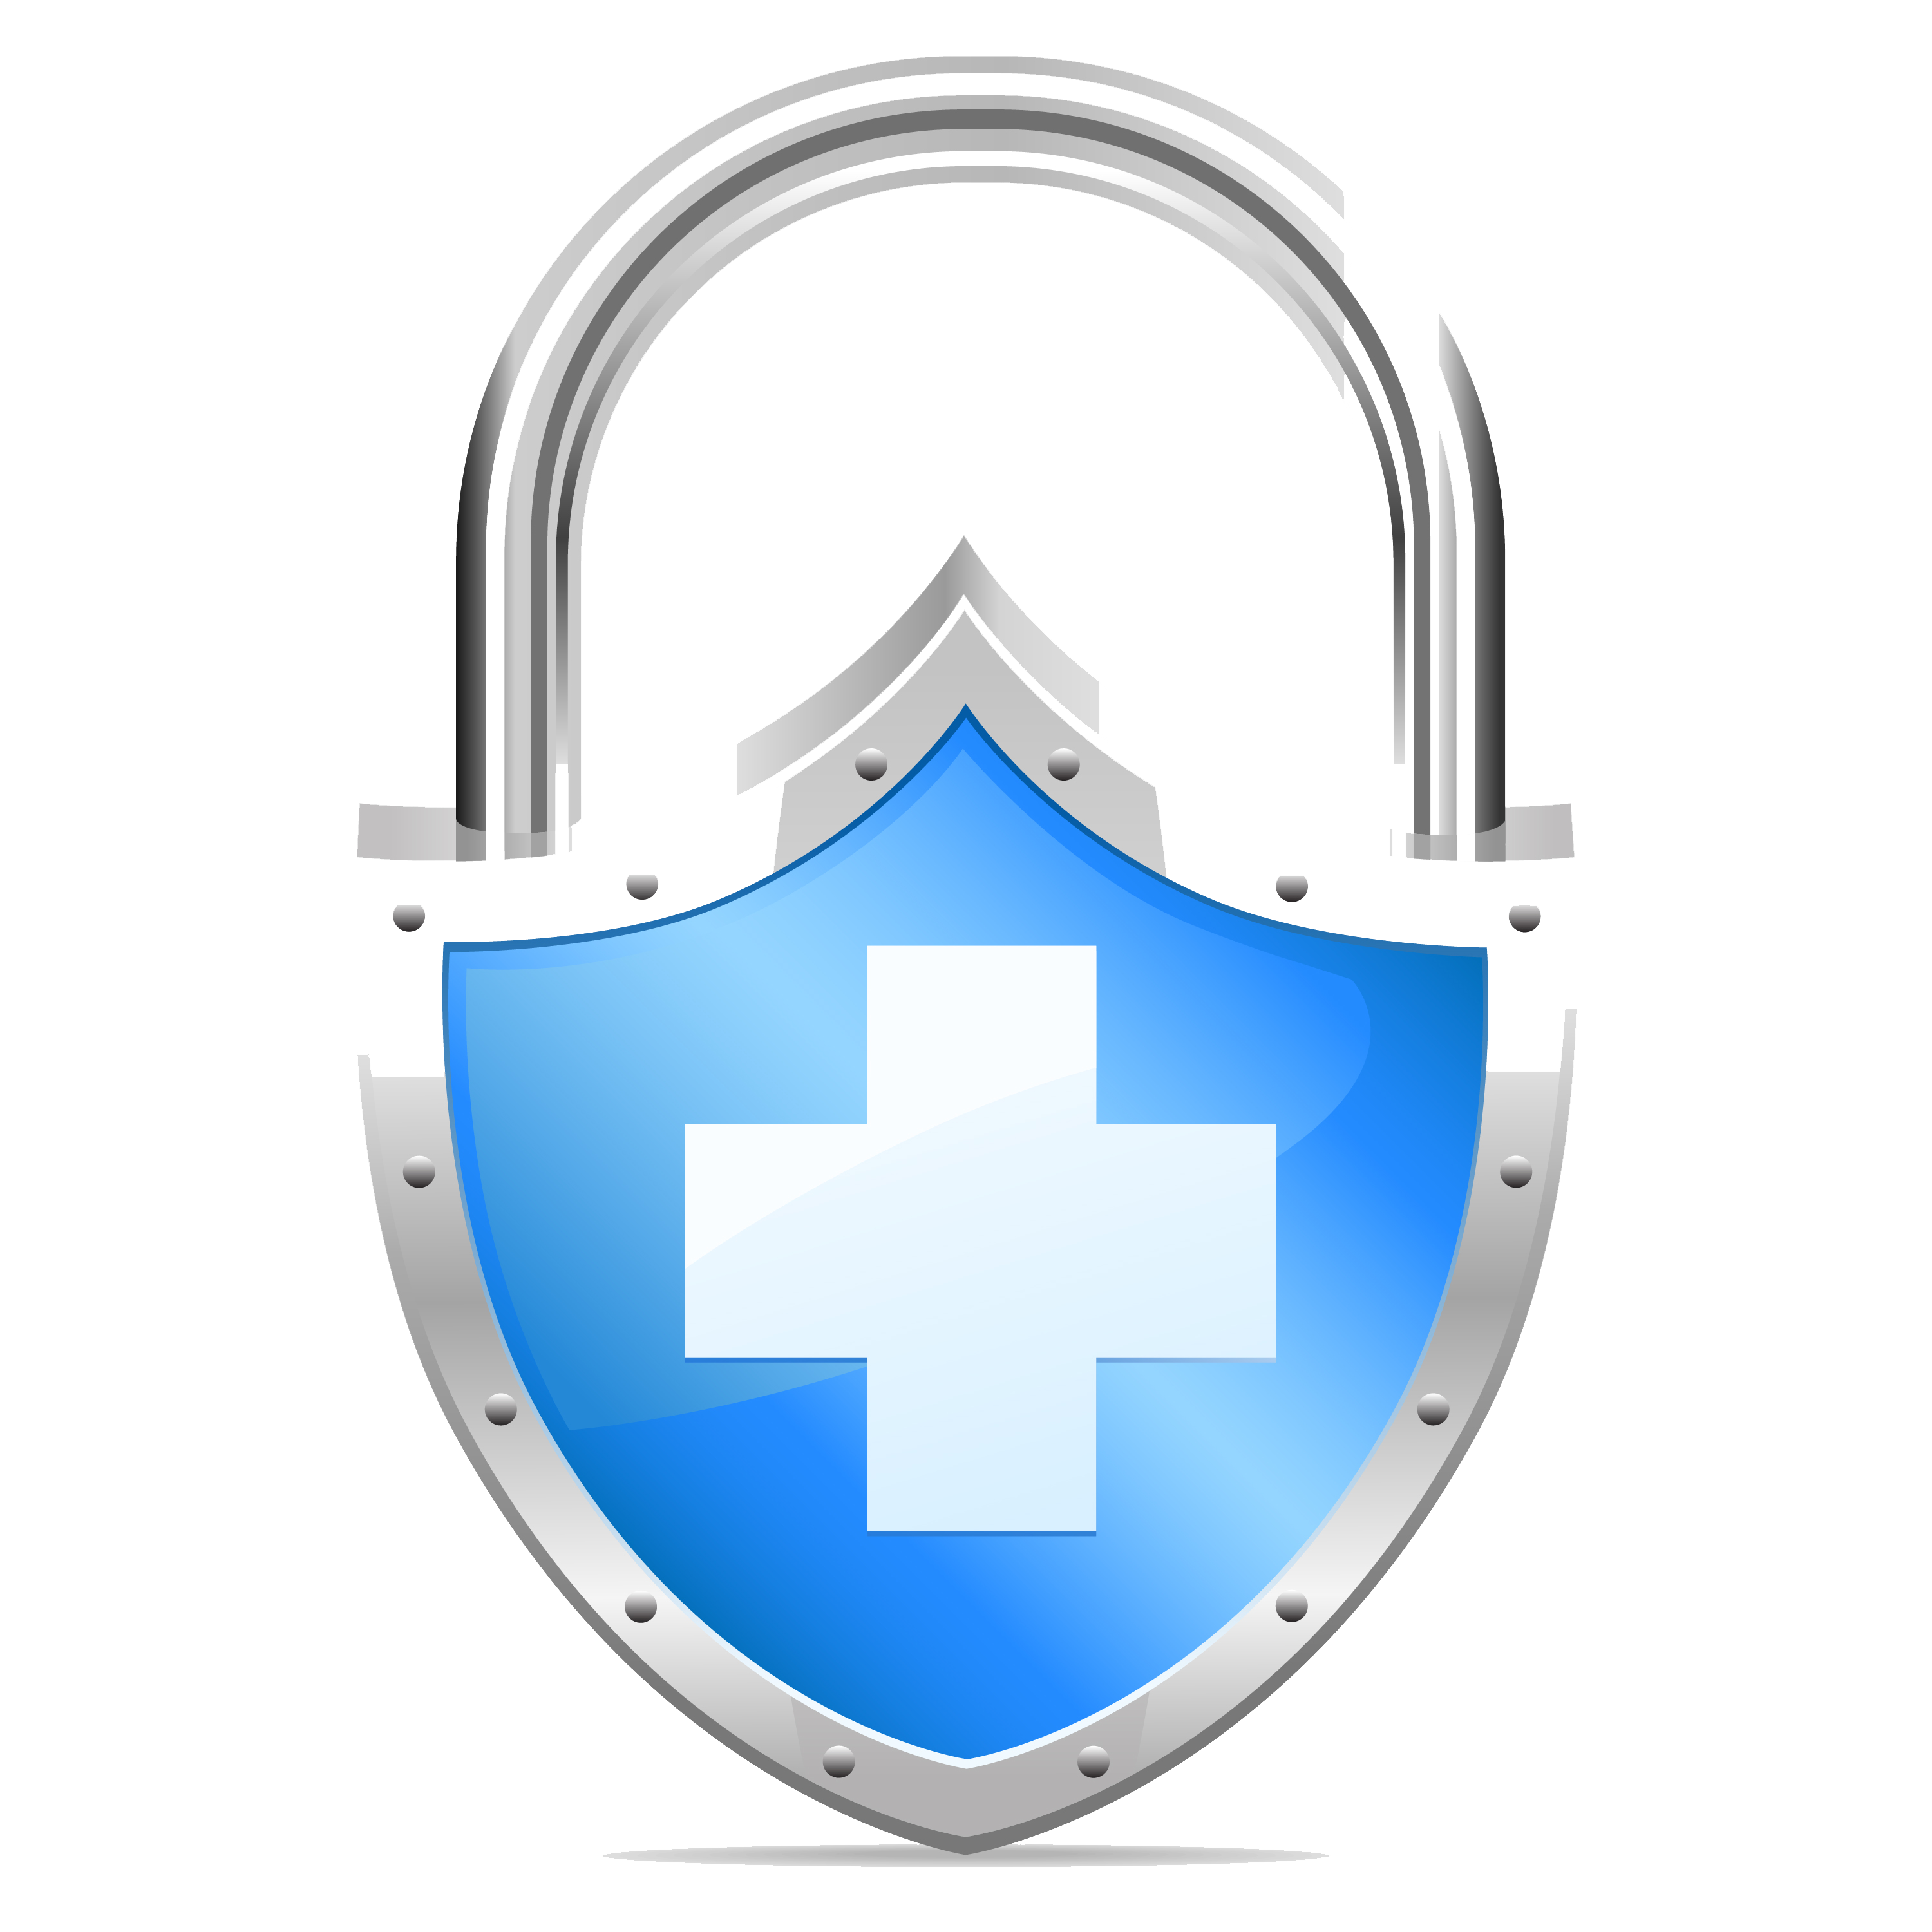 Secure lock on health information